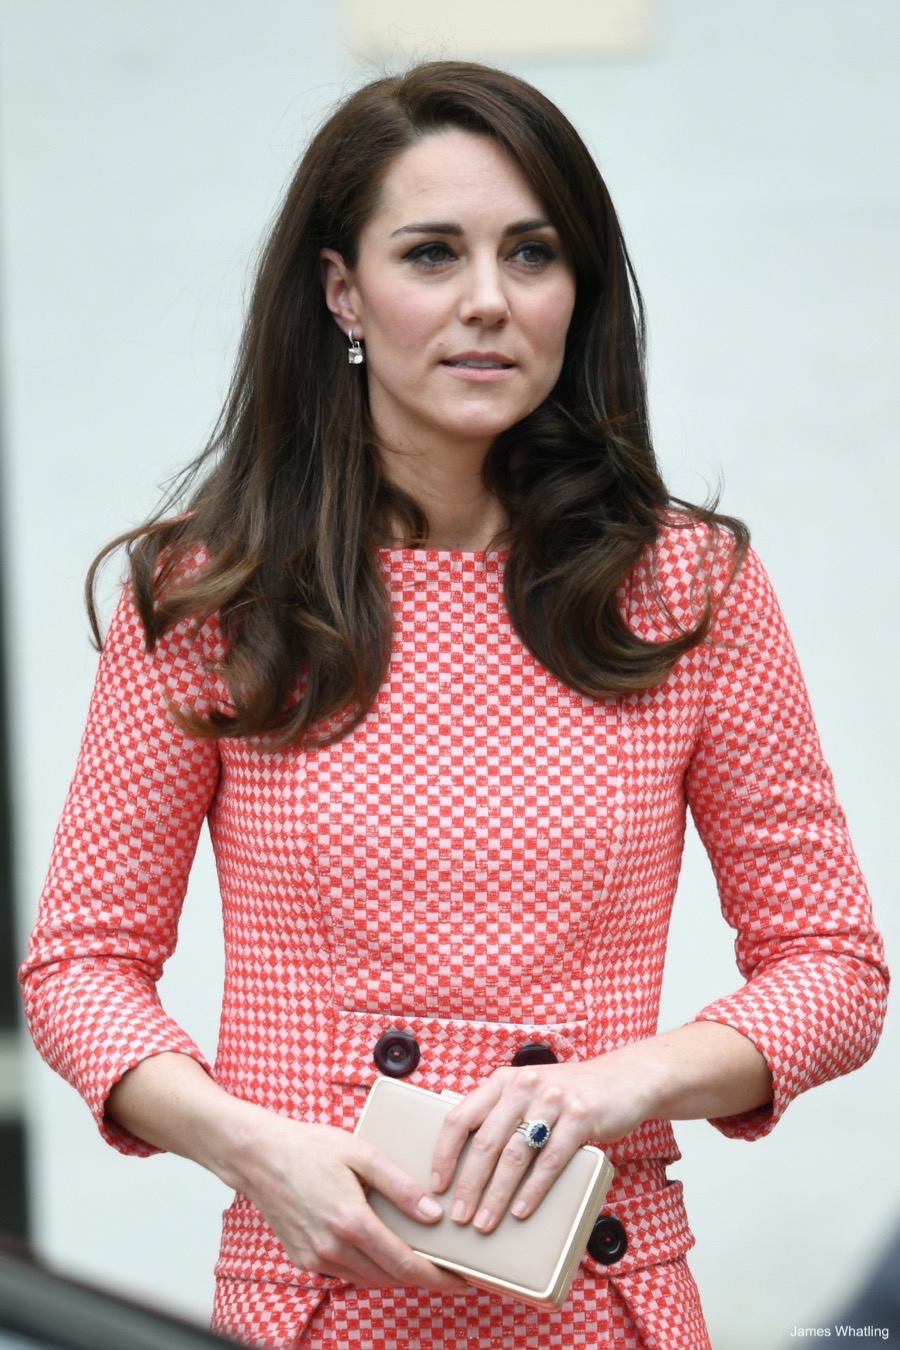 Kate Middleton wearing her engagement ring at a public engagement in London